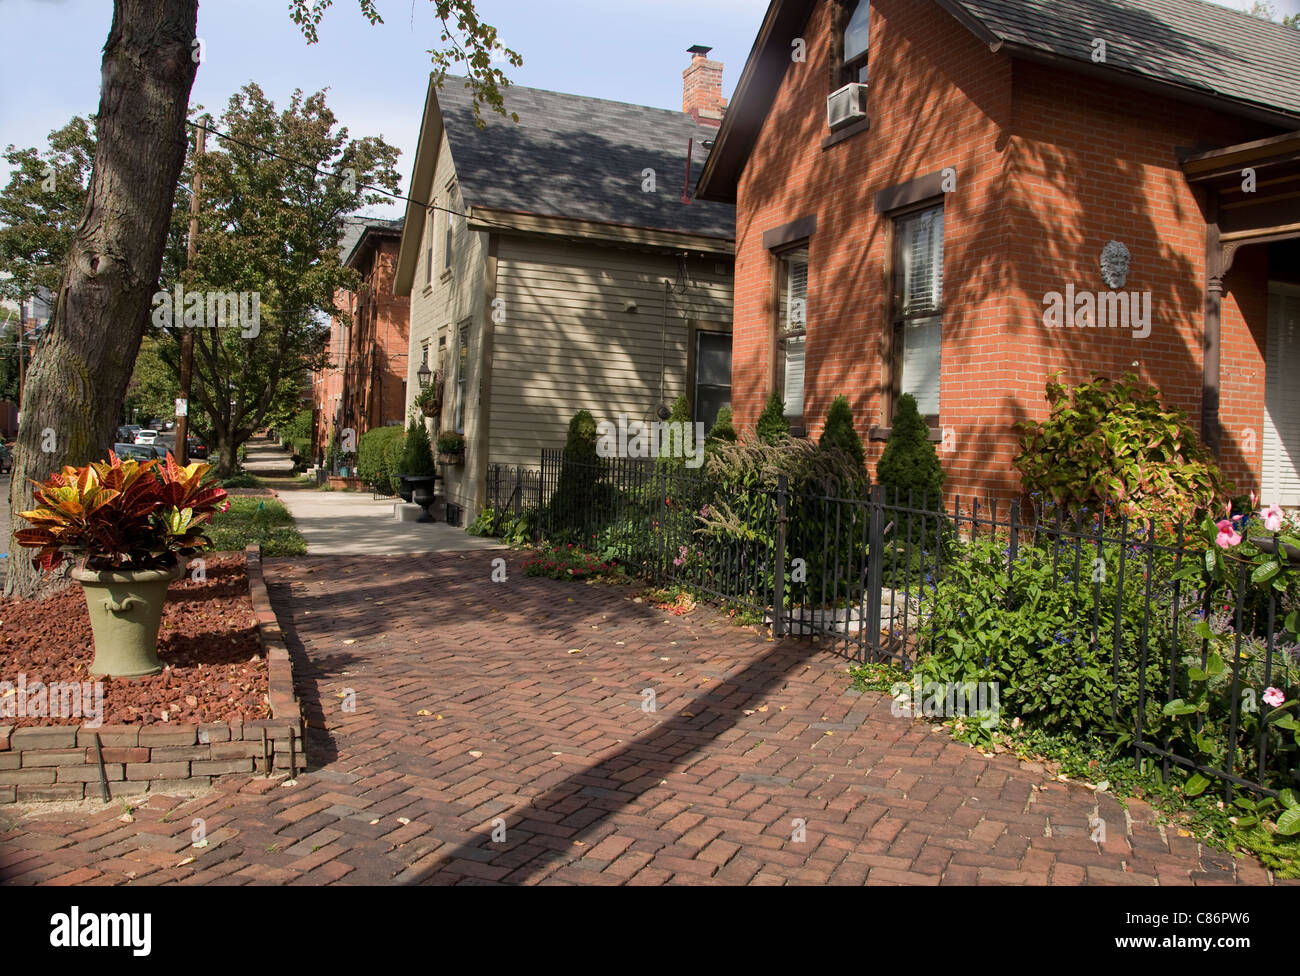 historic homes in the german village area of columbus ohio stock photo 39487650 alamy. Black Bedroom Furniture Sets. Home Design Ideas